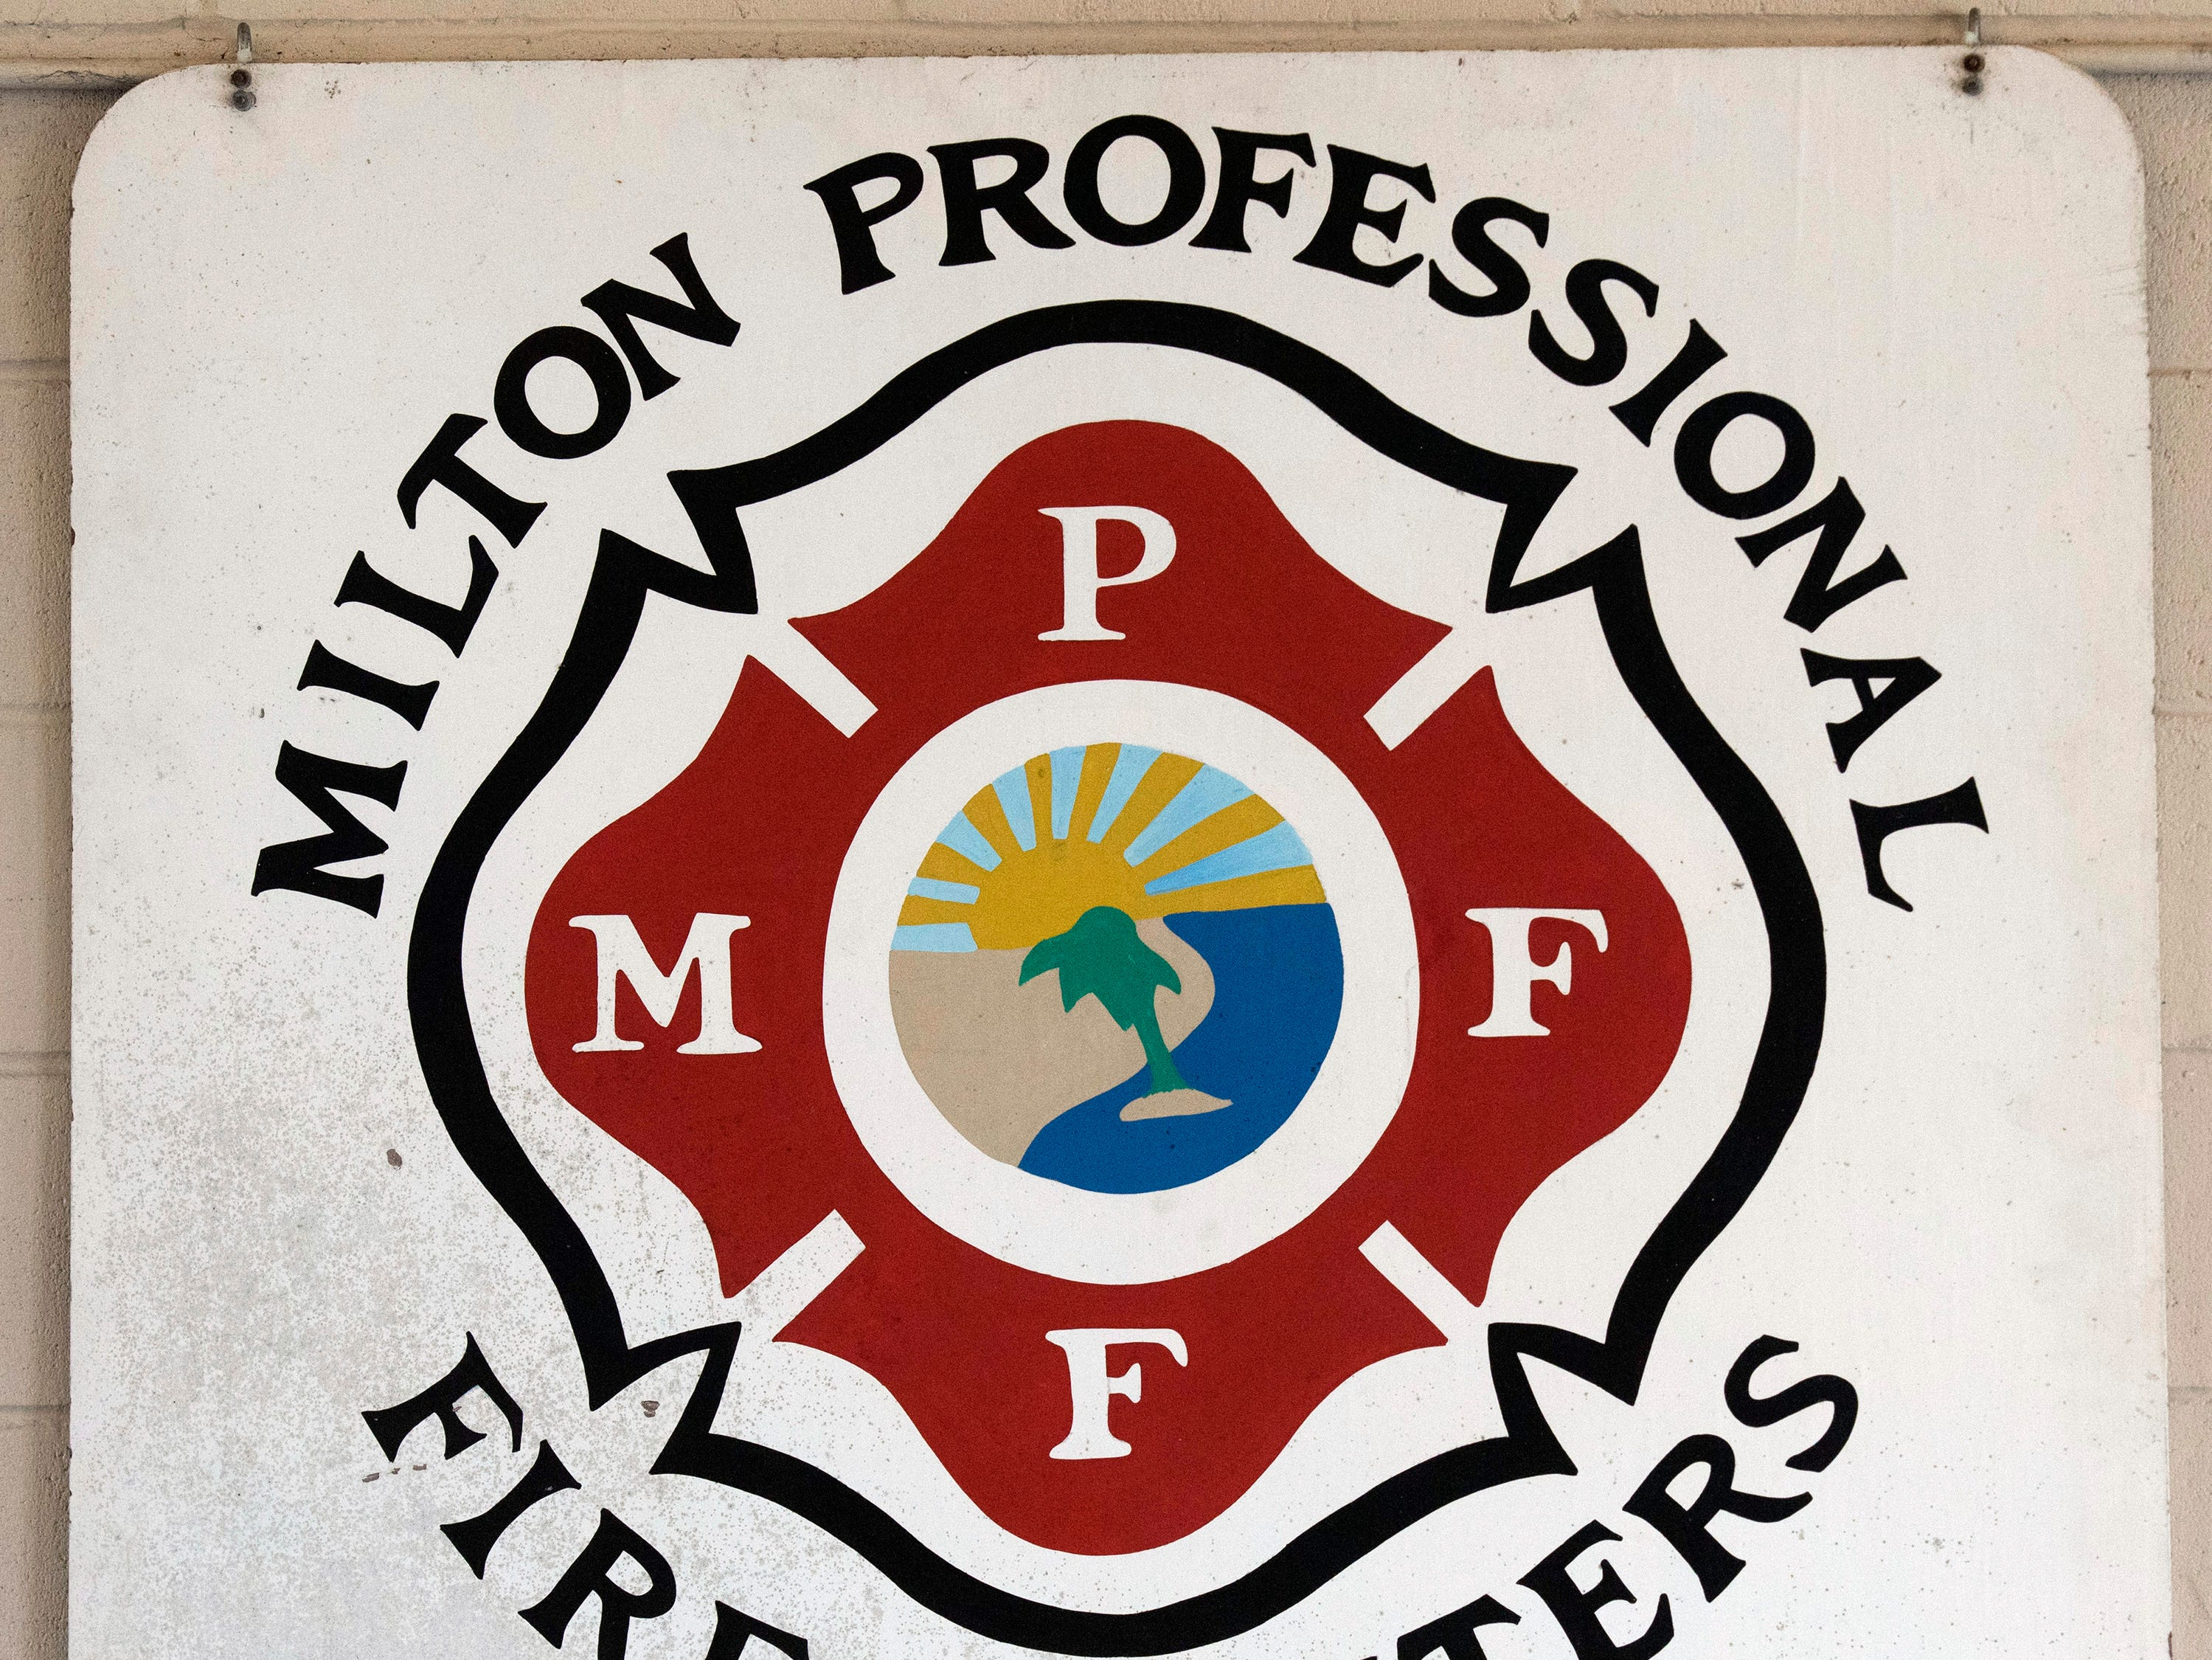 Milton firefights are at ready for emergency calls on Thursday, Feb. 7, 2019. The Milton FD released its annual report this week and said their calls for service increased exponentially last year.